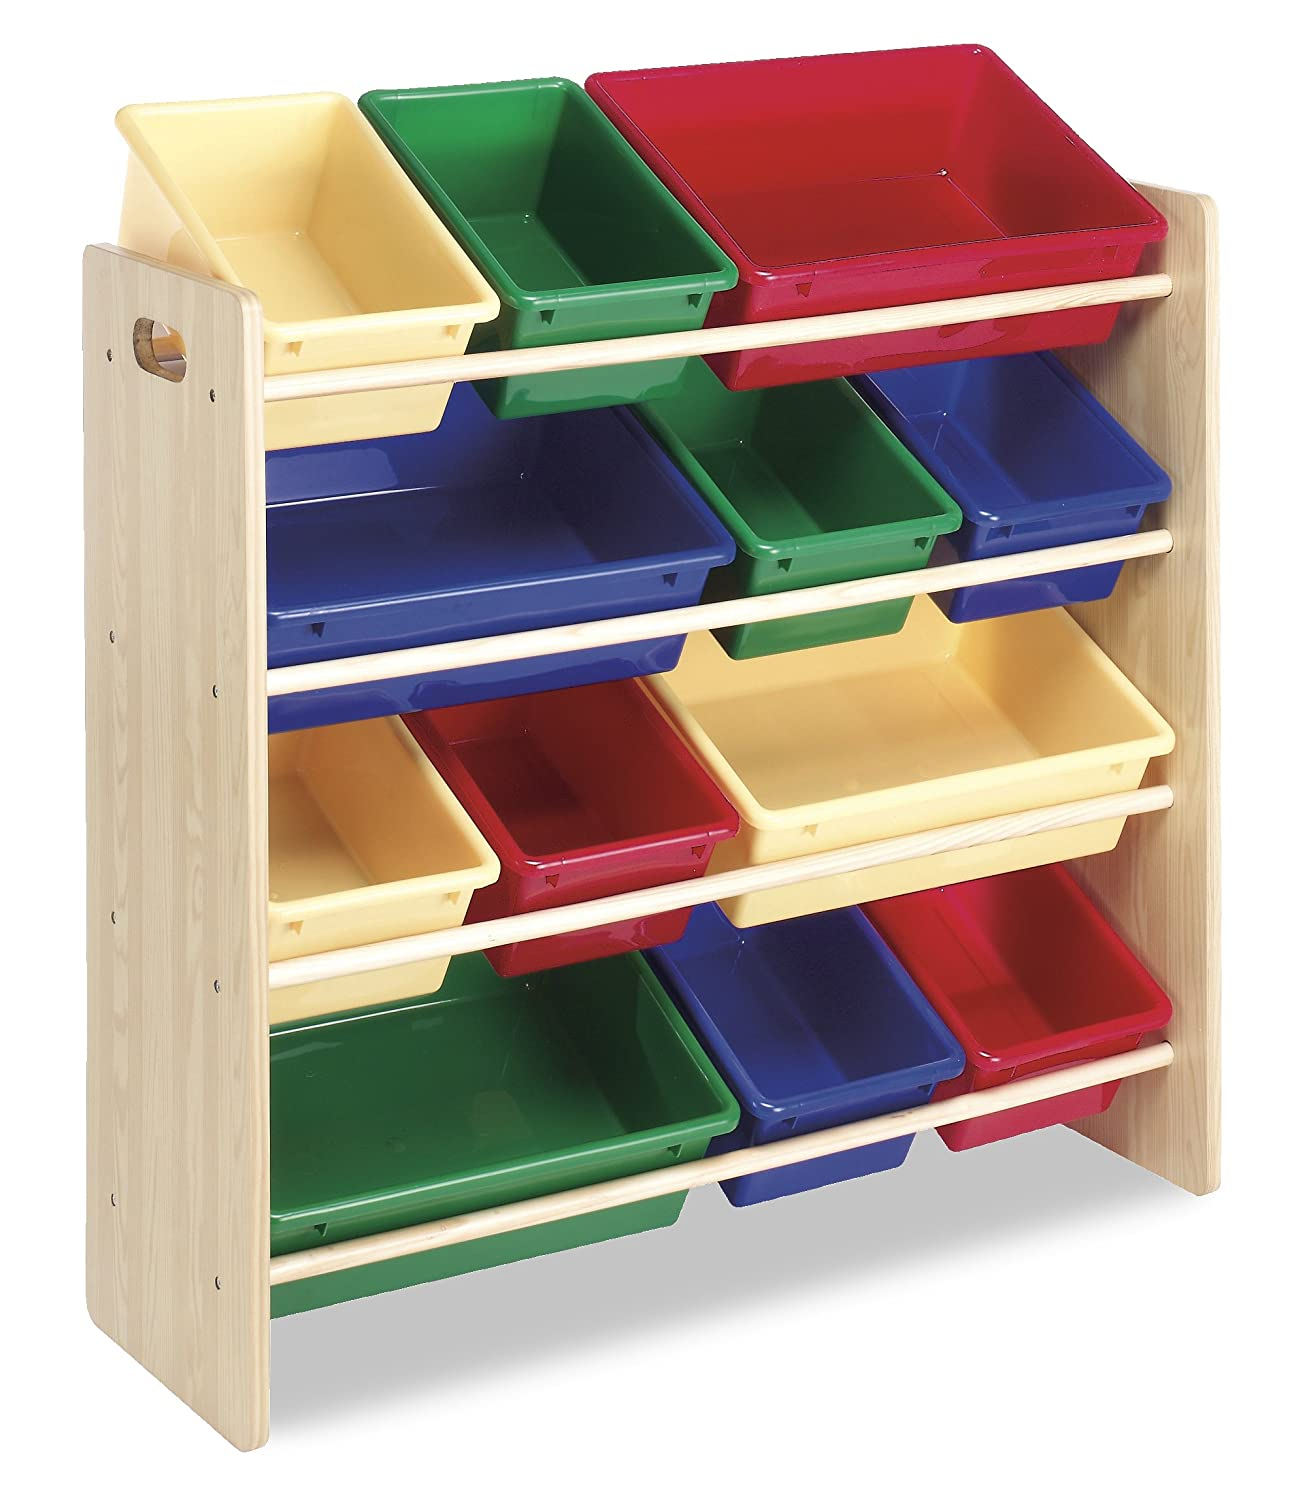 Superb Amazon.com: Whitmor Kids Storage Collection 12 Bin Organizer Primary: Home  U0026 Kitchen